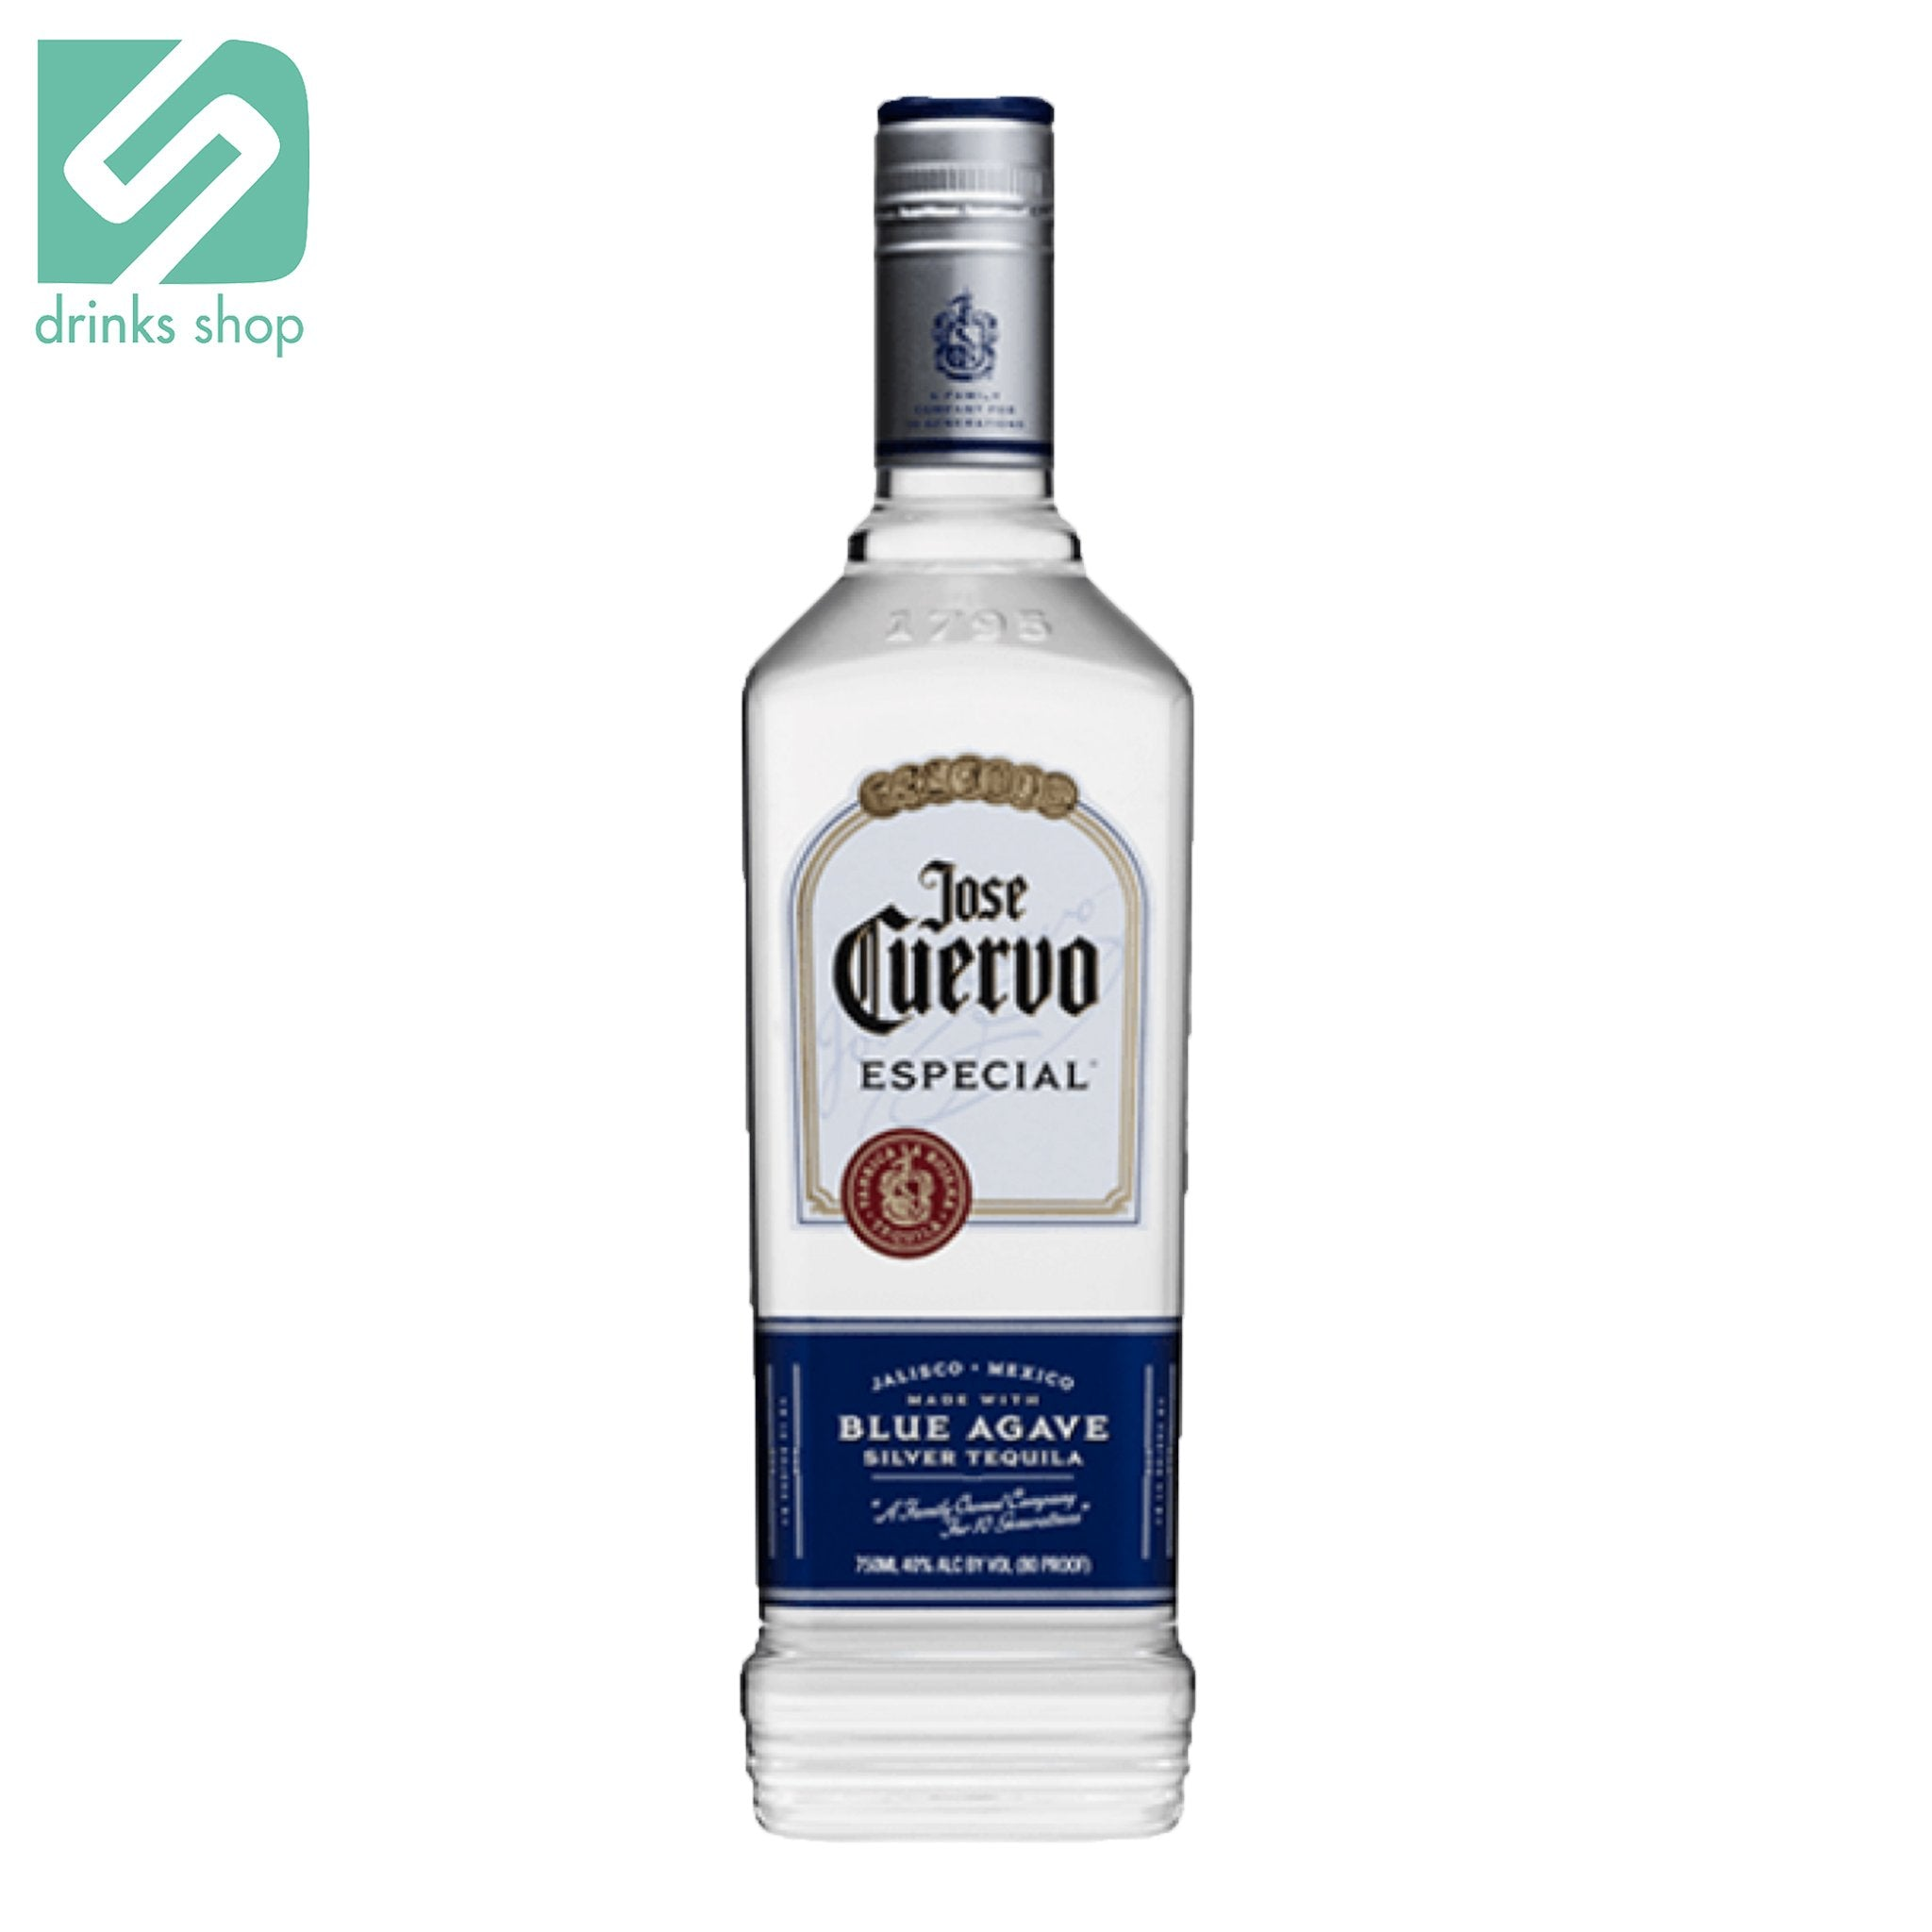 Jose Cuervo Especial Silver Tequila 70cl, Tequila - Image 2